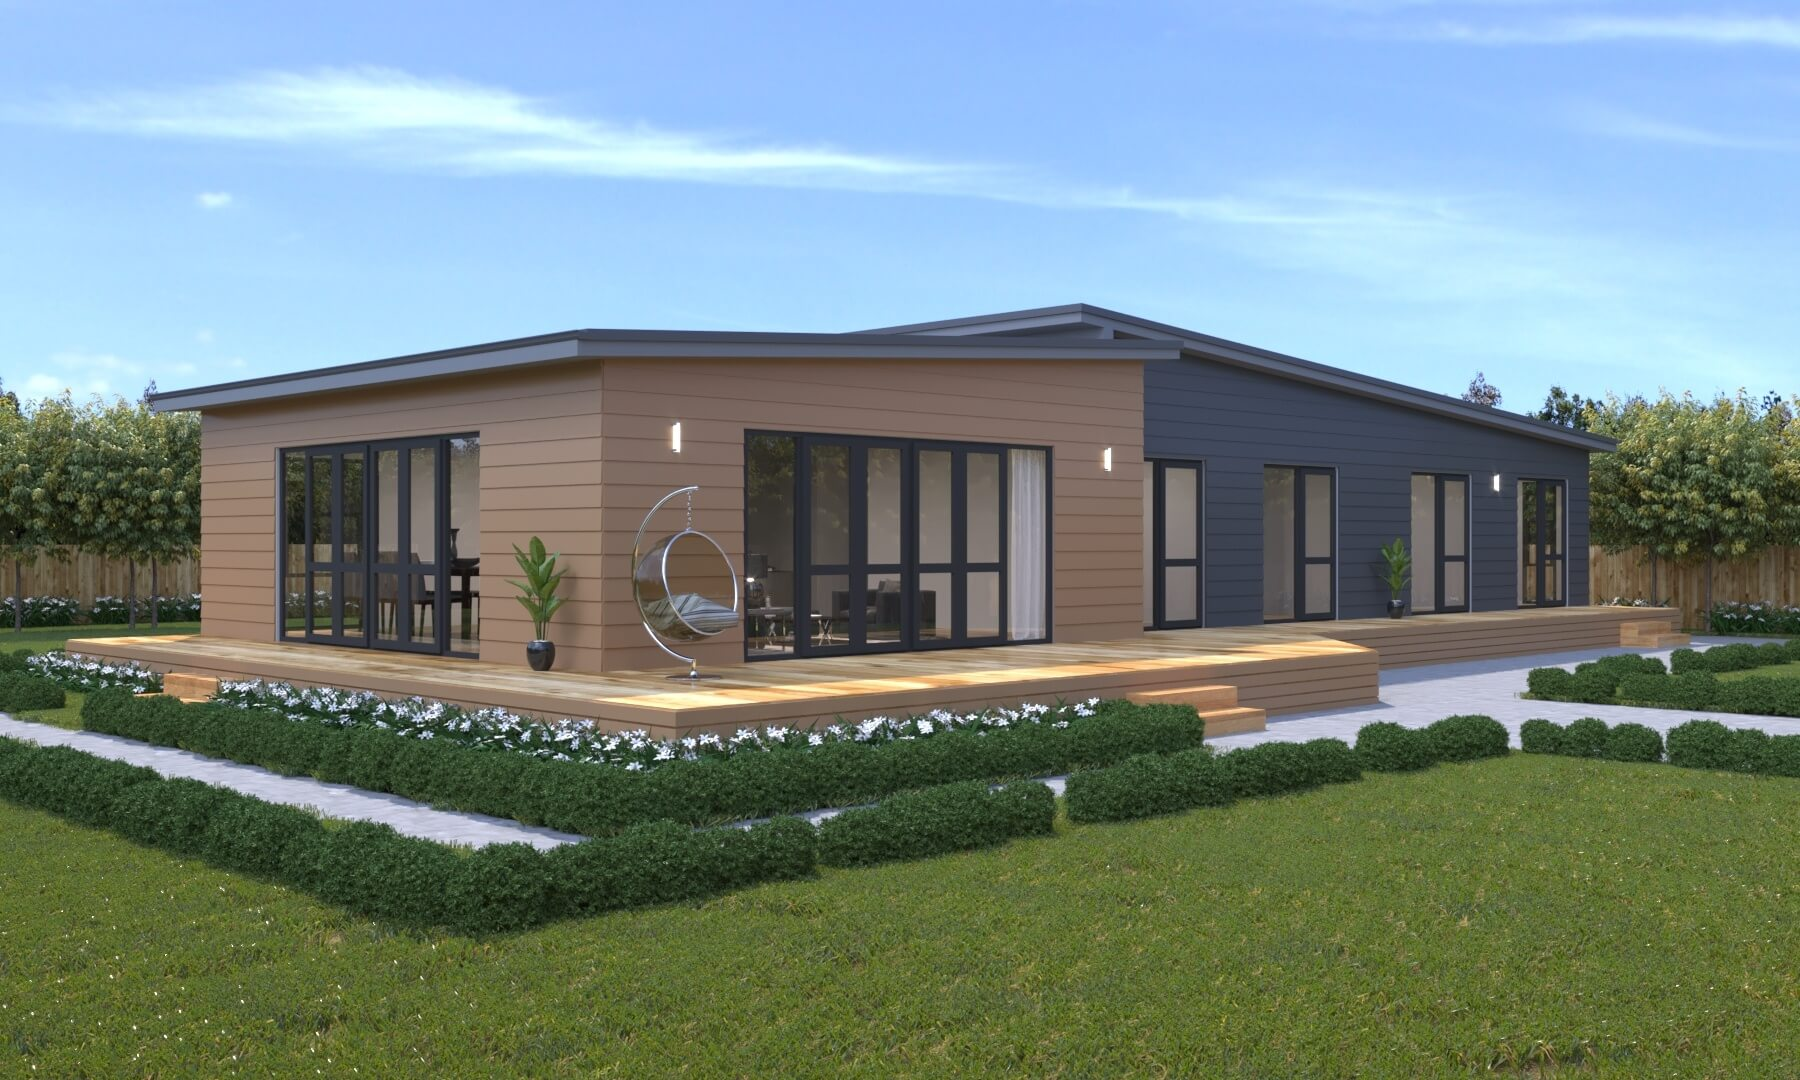 4 Bedroom house designed for summer - Rakaia